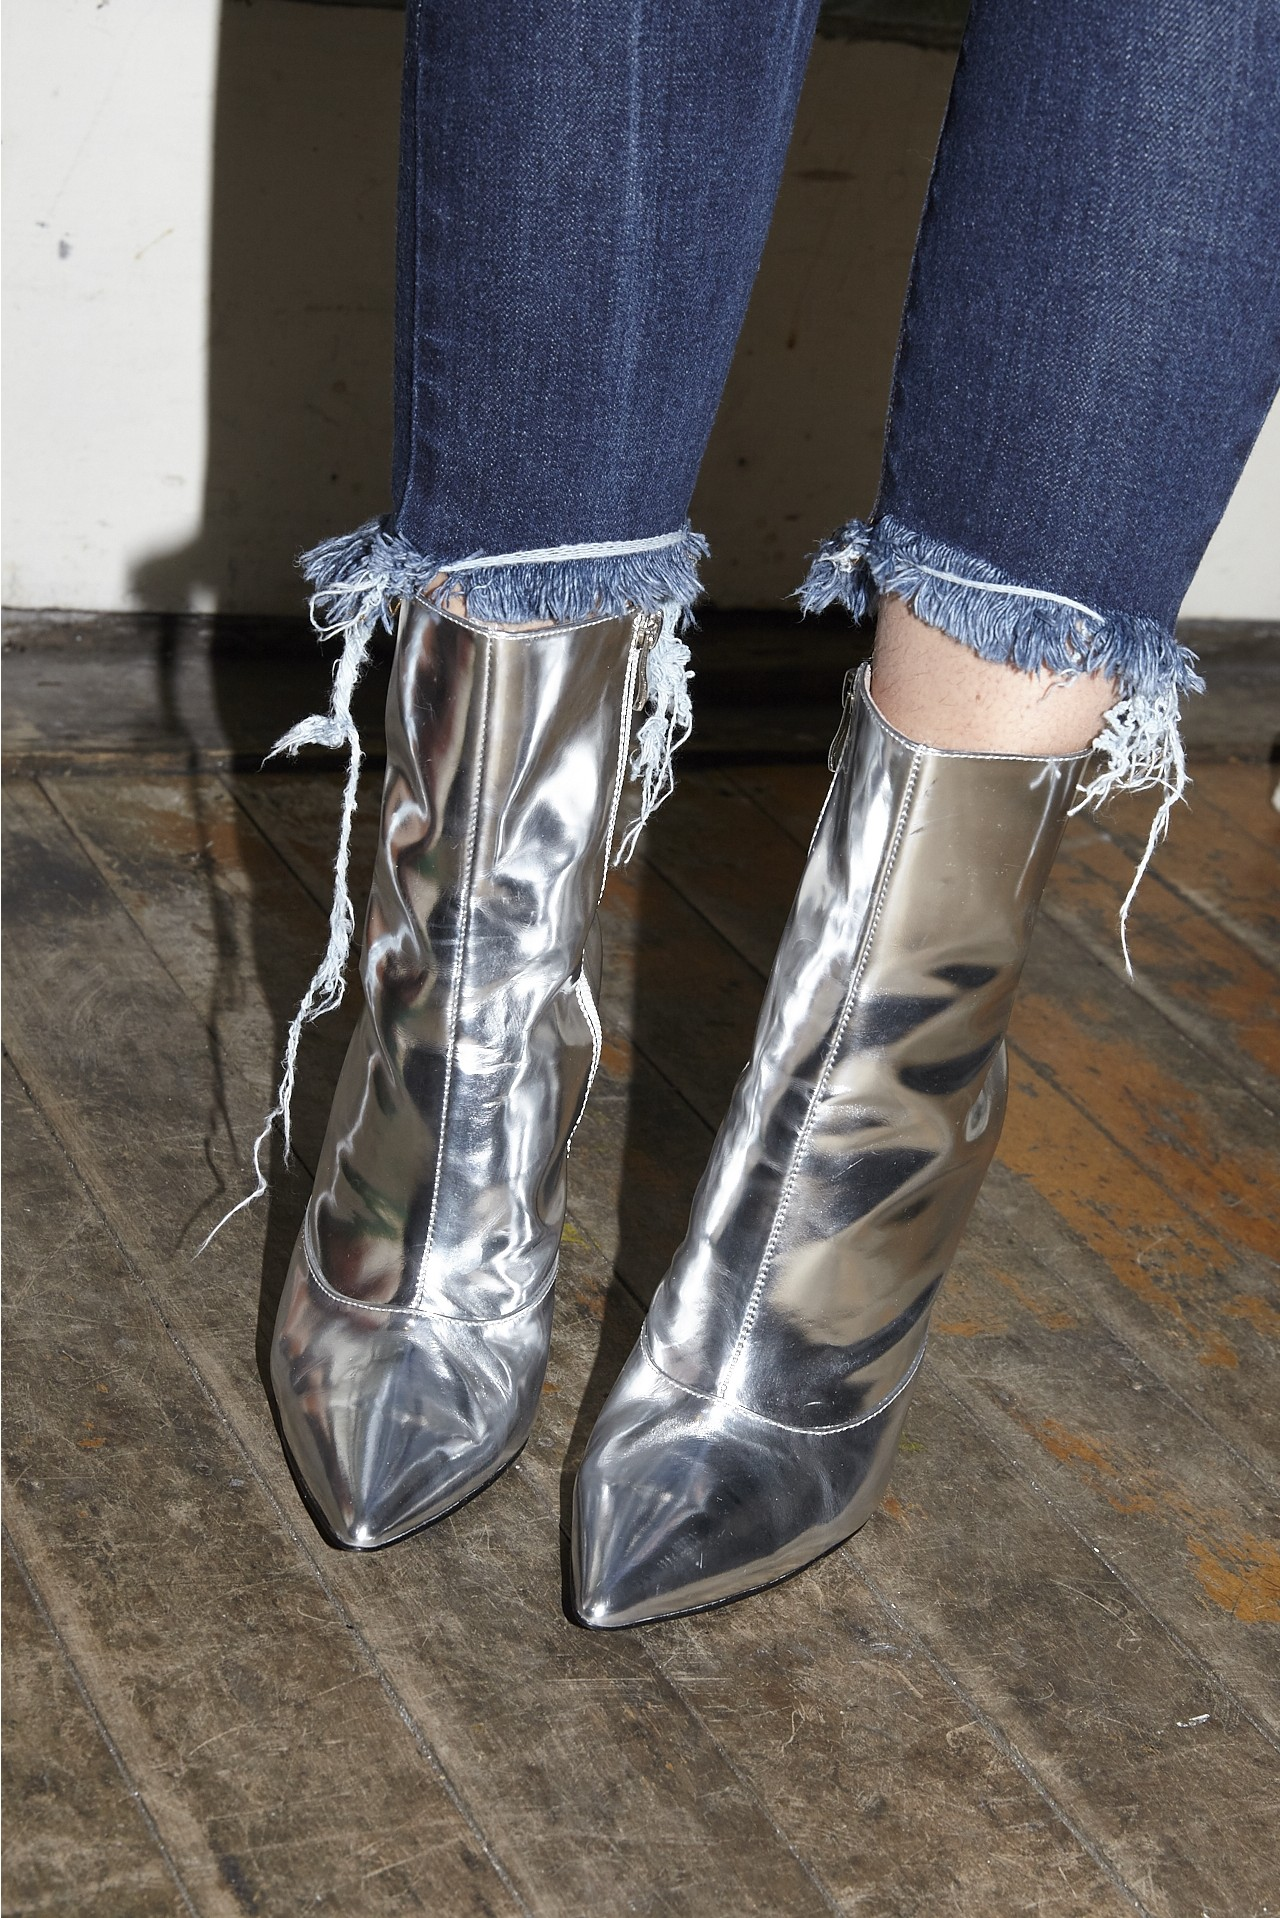 Stolen Girfriends Club released their new Lala boots